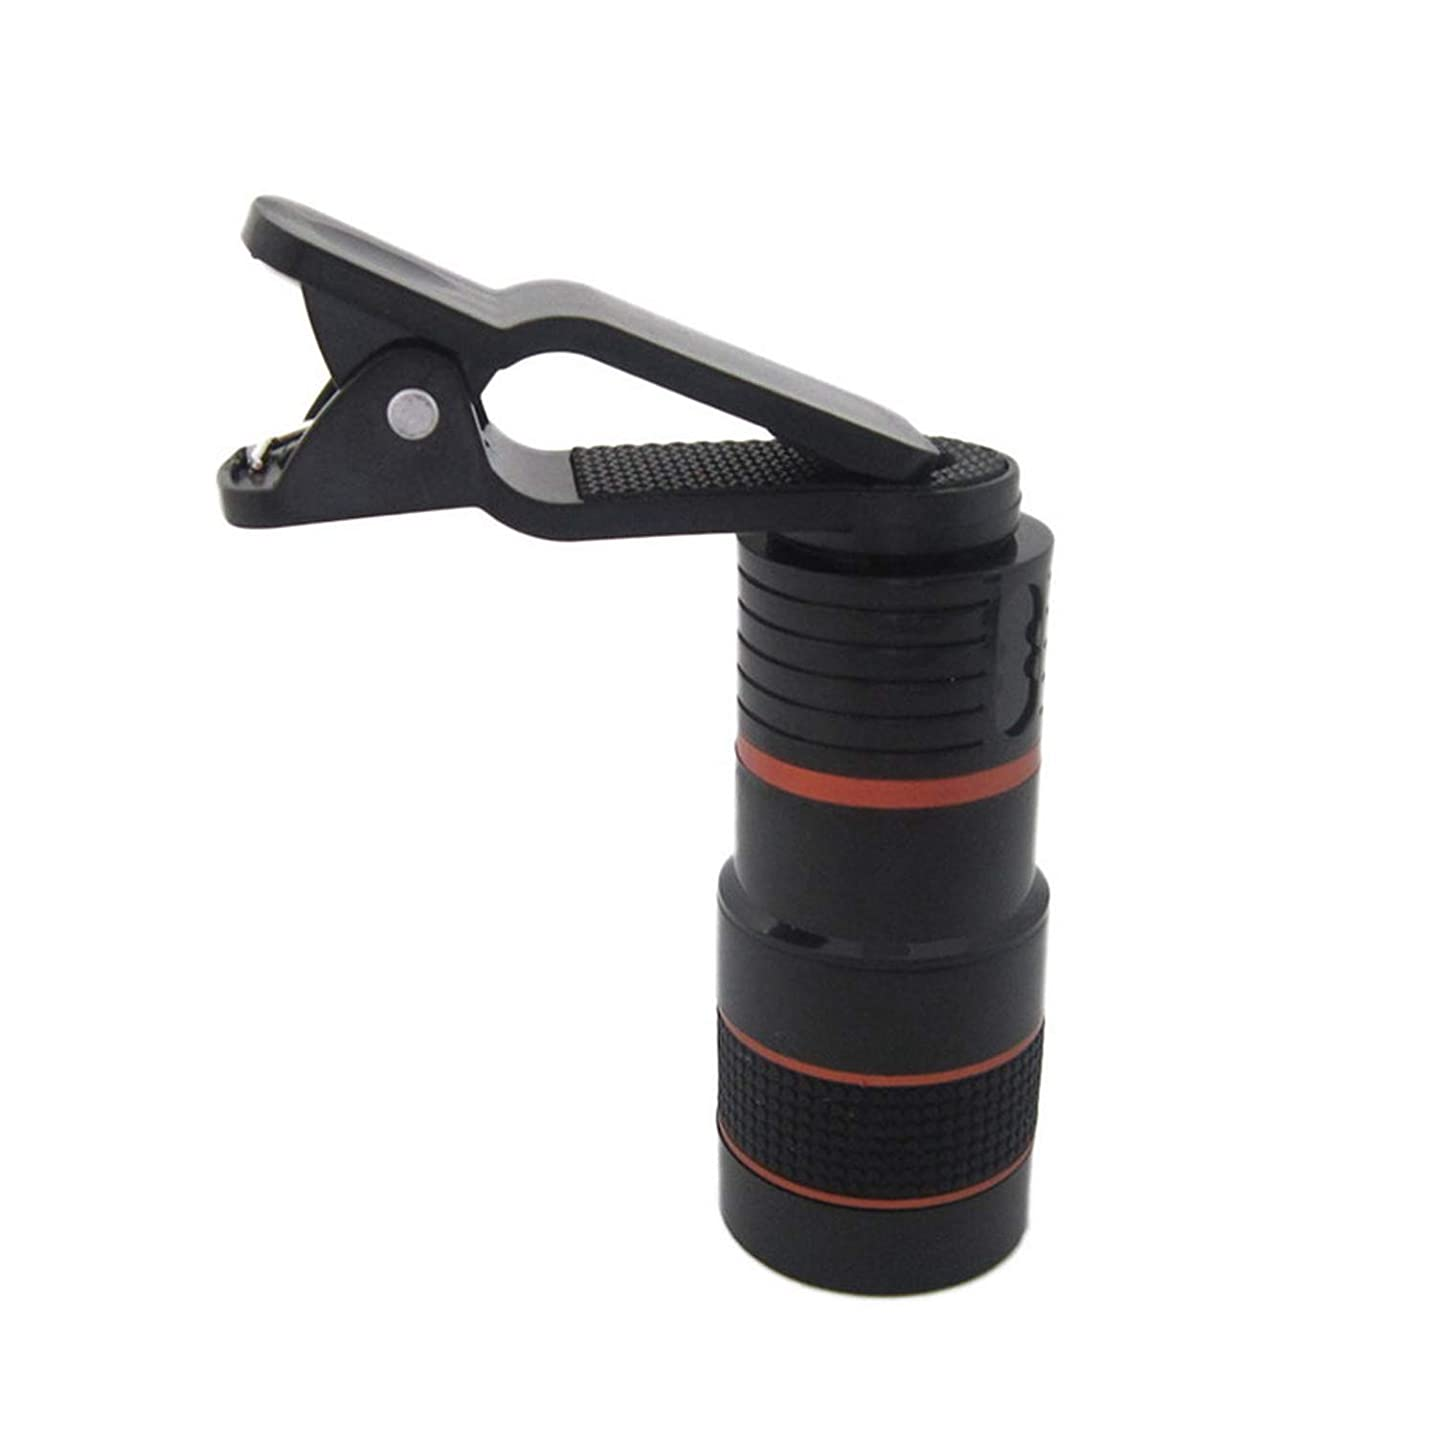 Universal Clip-on 8X Zoom Camera Lens Telescope Telephoto for Phone for Cameras for Mobile Phones